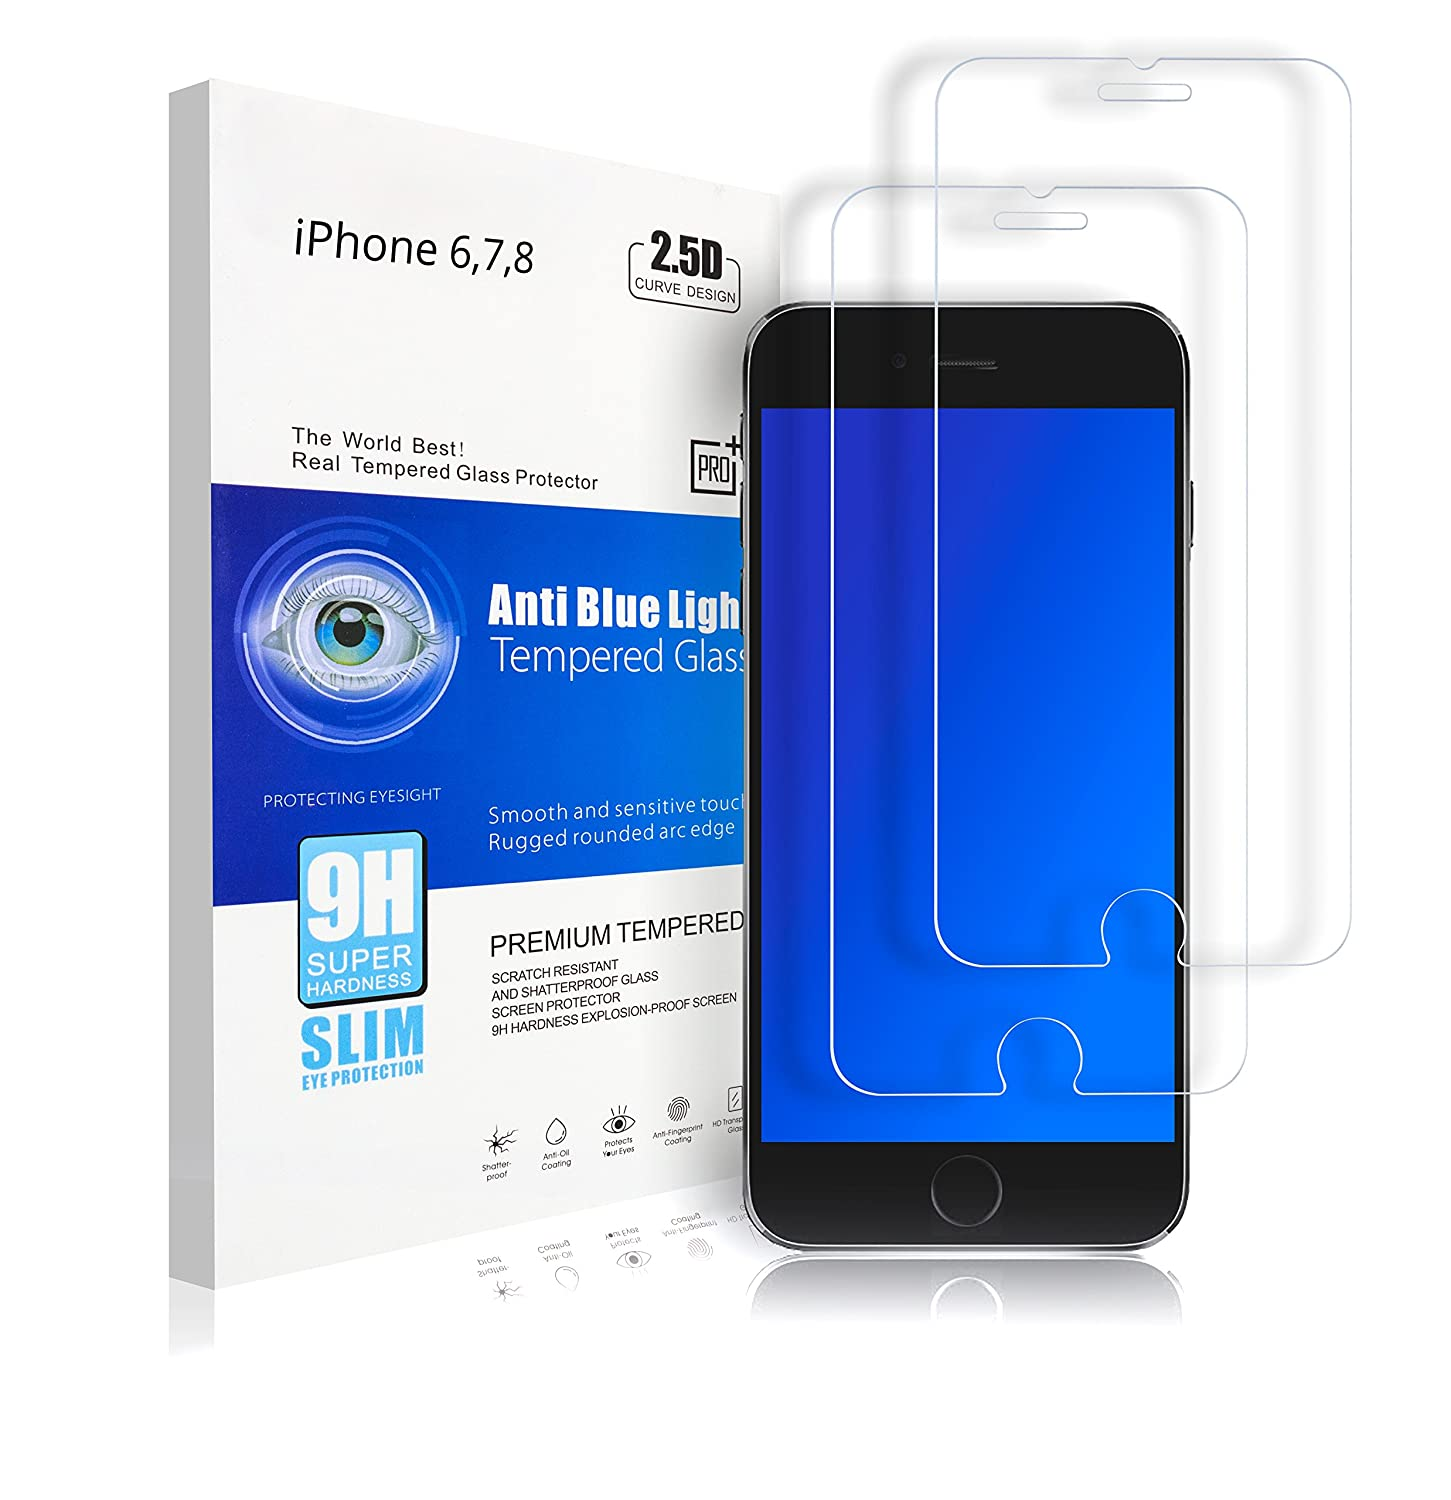 A-Z Super Store iPhone 6,7,8 Premium HD Tempered Glass Screen Protector, Scratch Resistant, Shatter Proof, Anti-Oil Coating, Anti- Fingerprint Coating, Blue light Protection, 9H [.26mm Thick] (2 Pack)